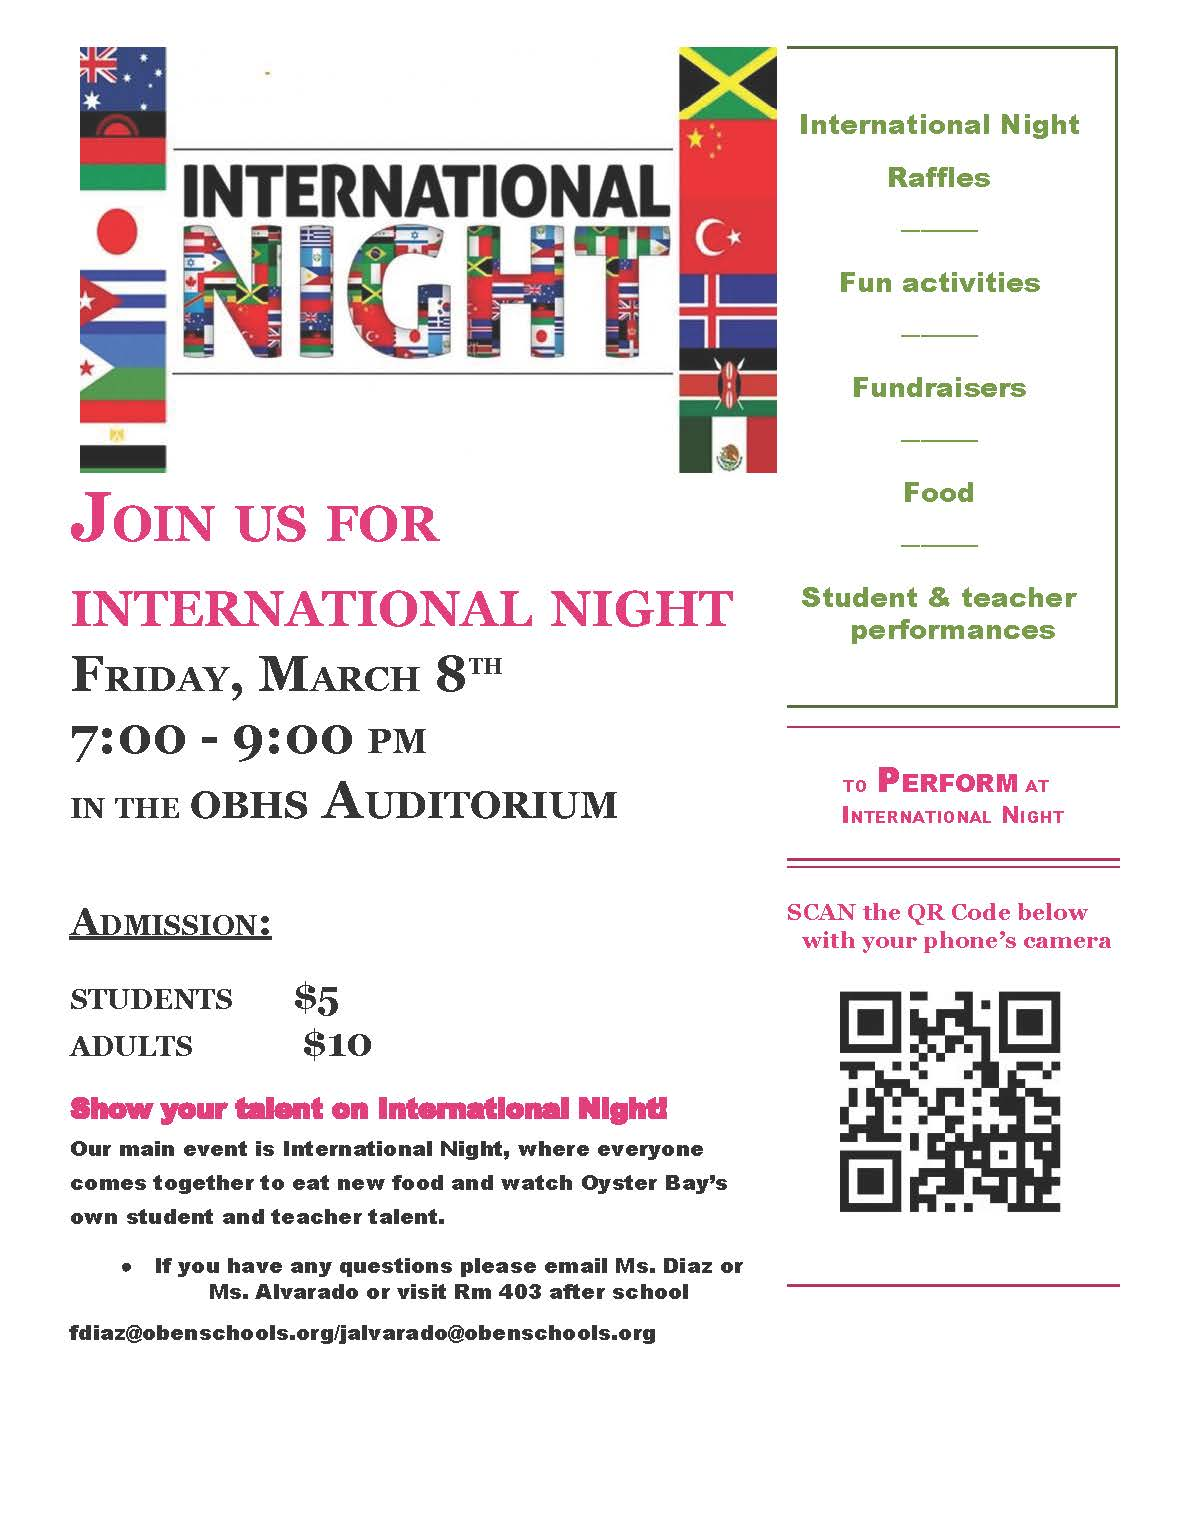 International Night is March 8